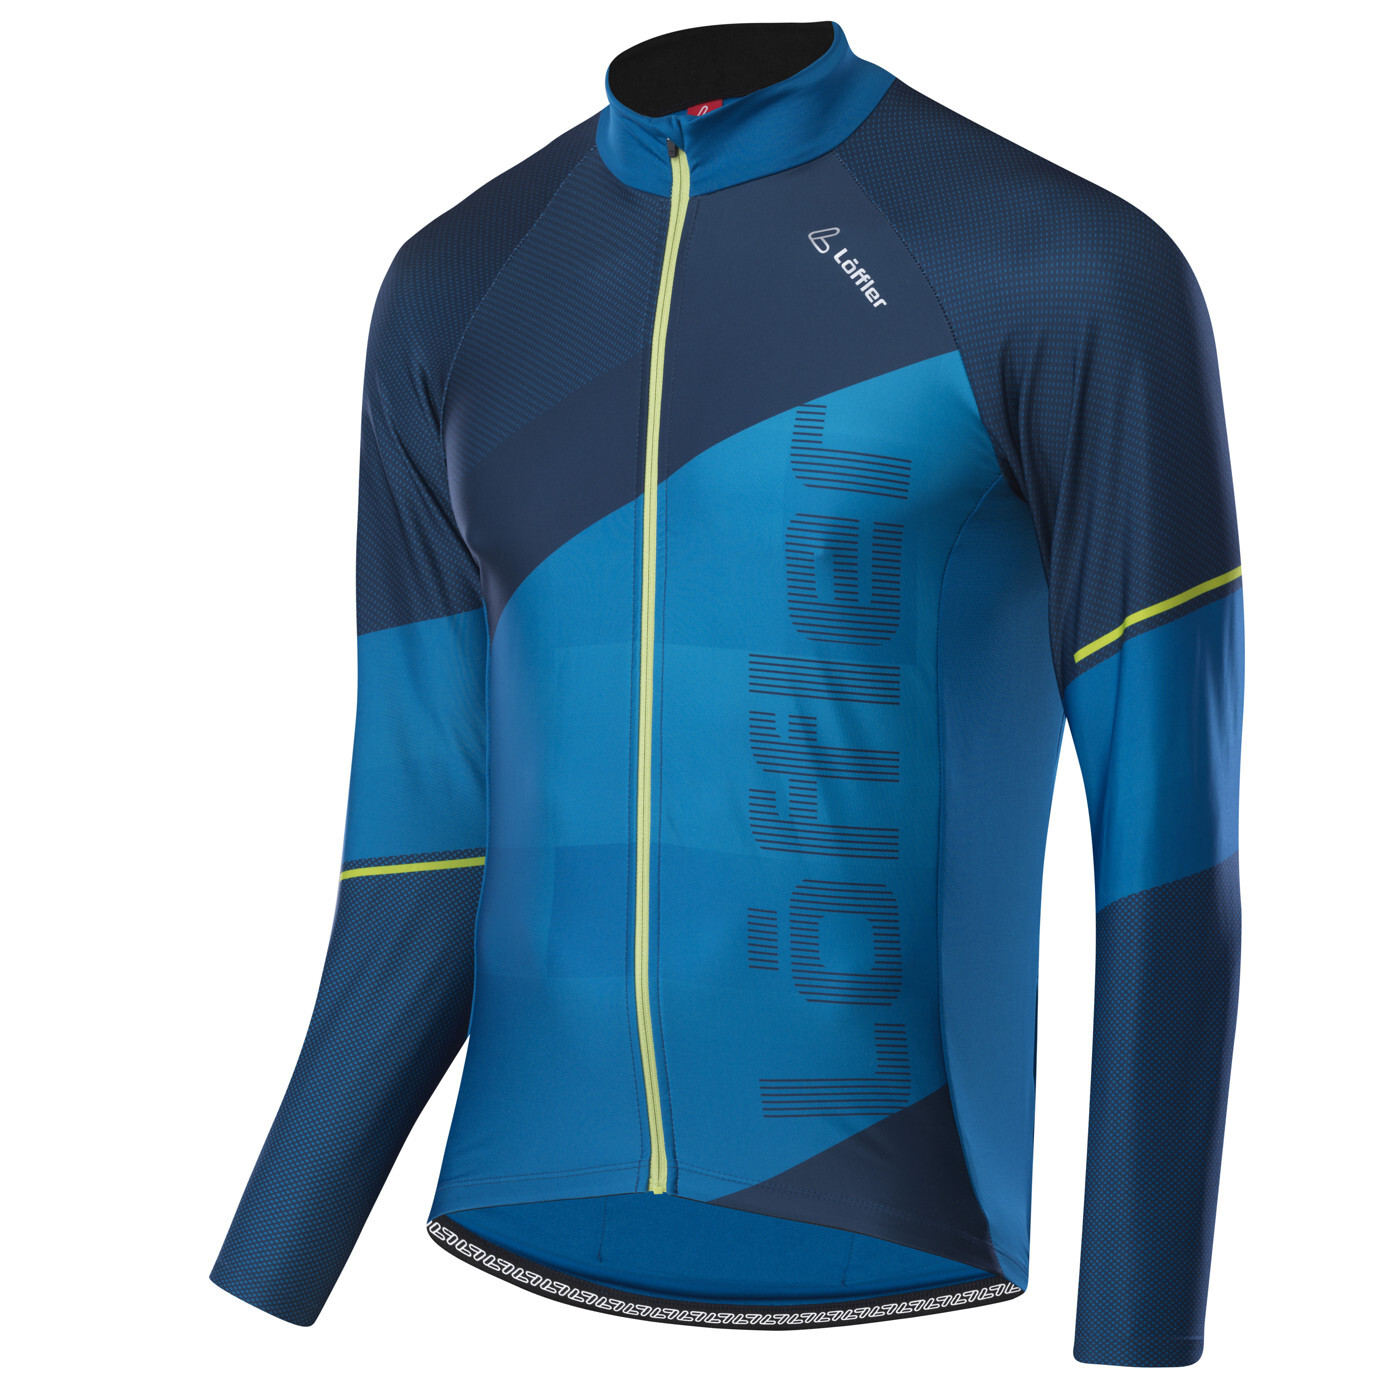 LÖFFLER M BIKE L/S JERSEY SPEED - Herren